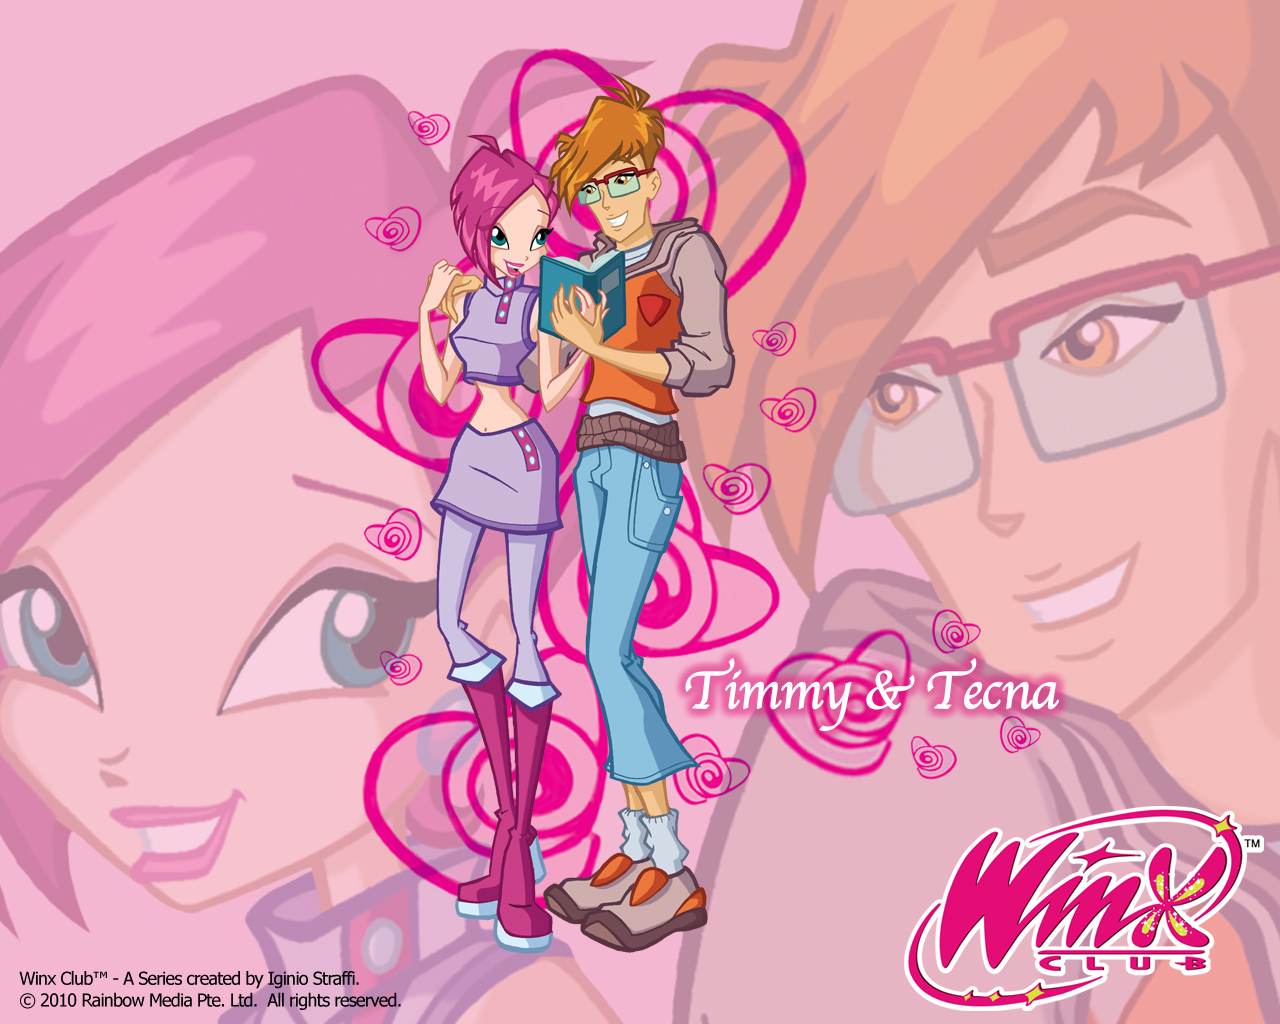 http://images4.fanpop.com/image/photos/15000000/Tecna_Timmy-the-winx-club-15061796-1280-1024.jpg